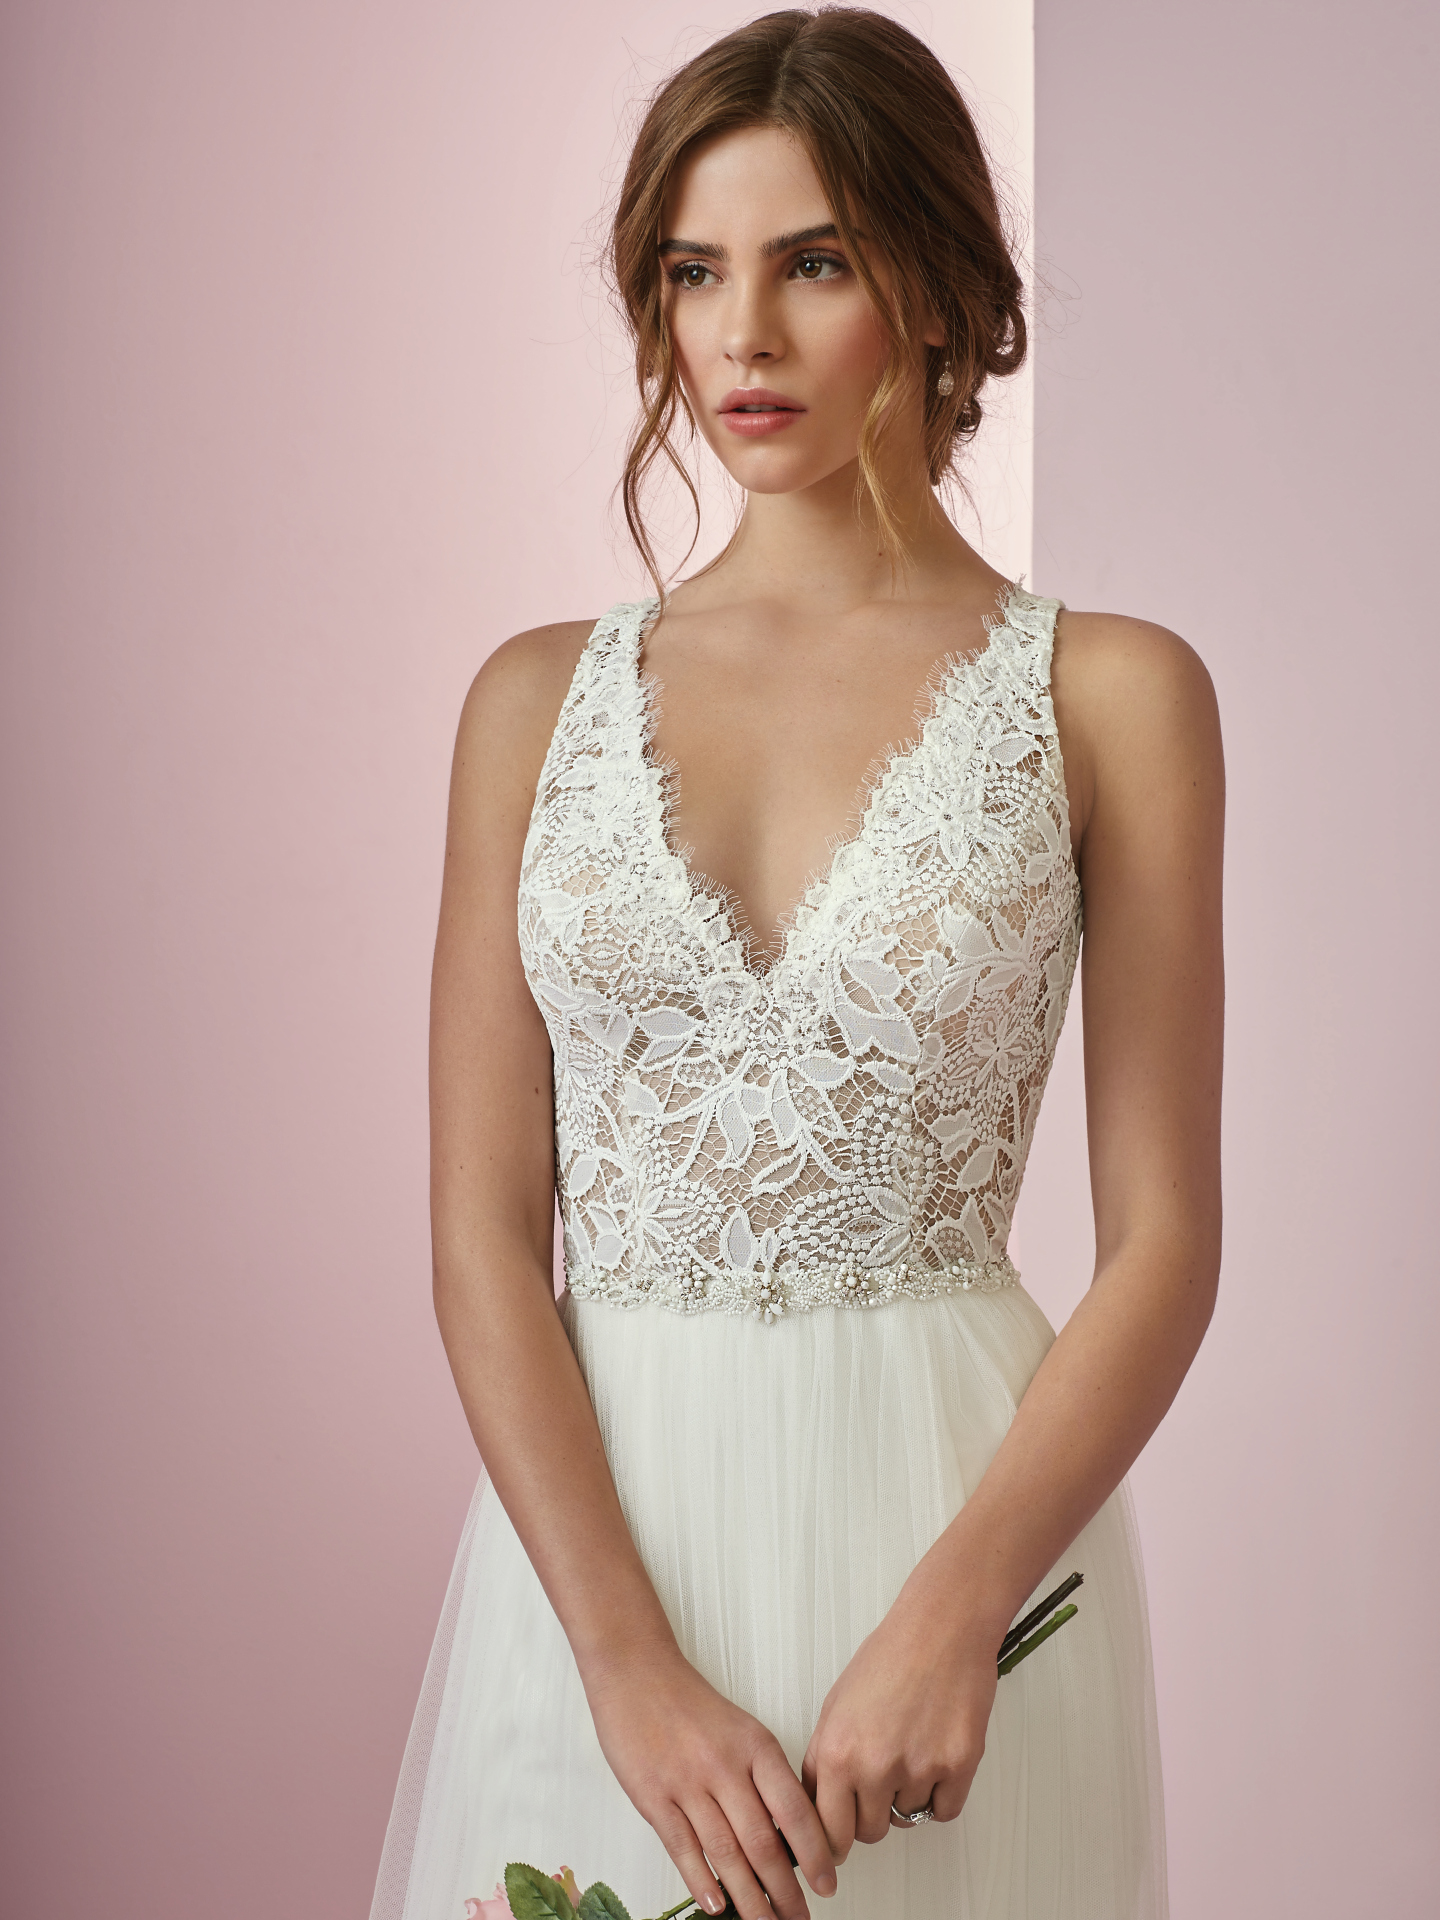 10 Boho Wedding Dresses by Rebecca Ingram - Well hello there, layered lace! Connie by Rebecca Ingram.